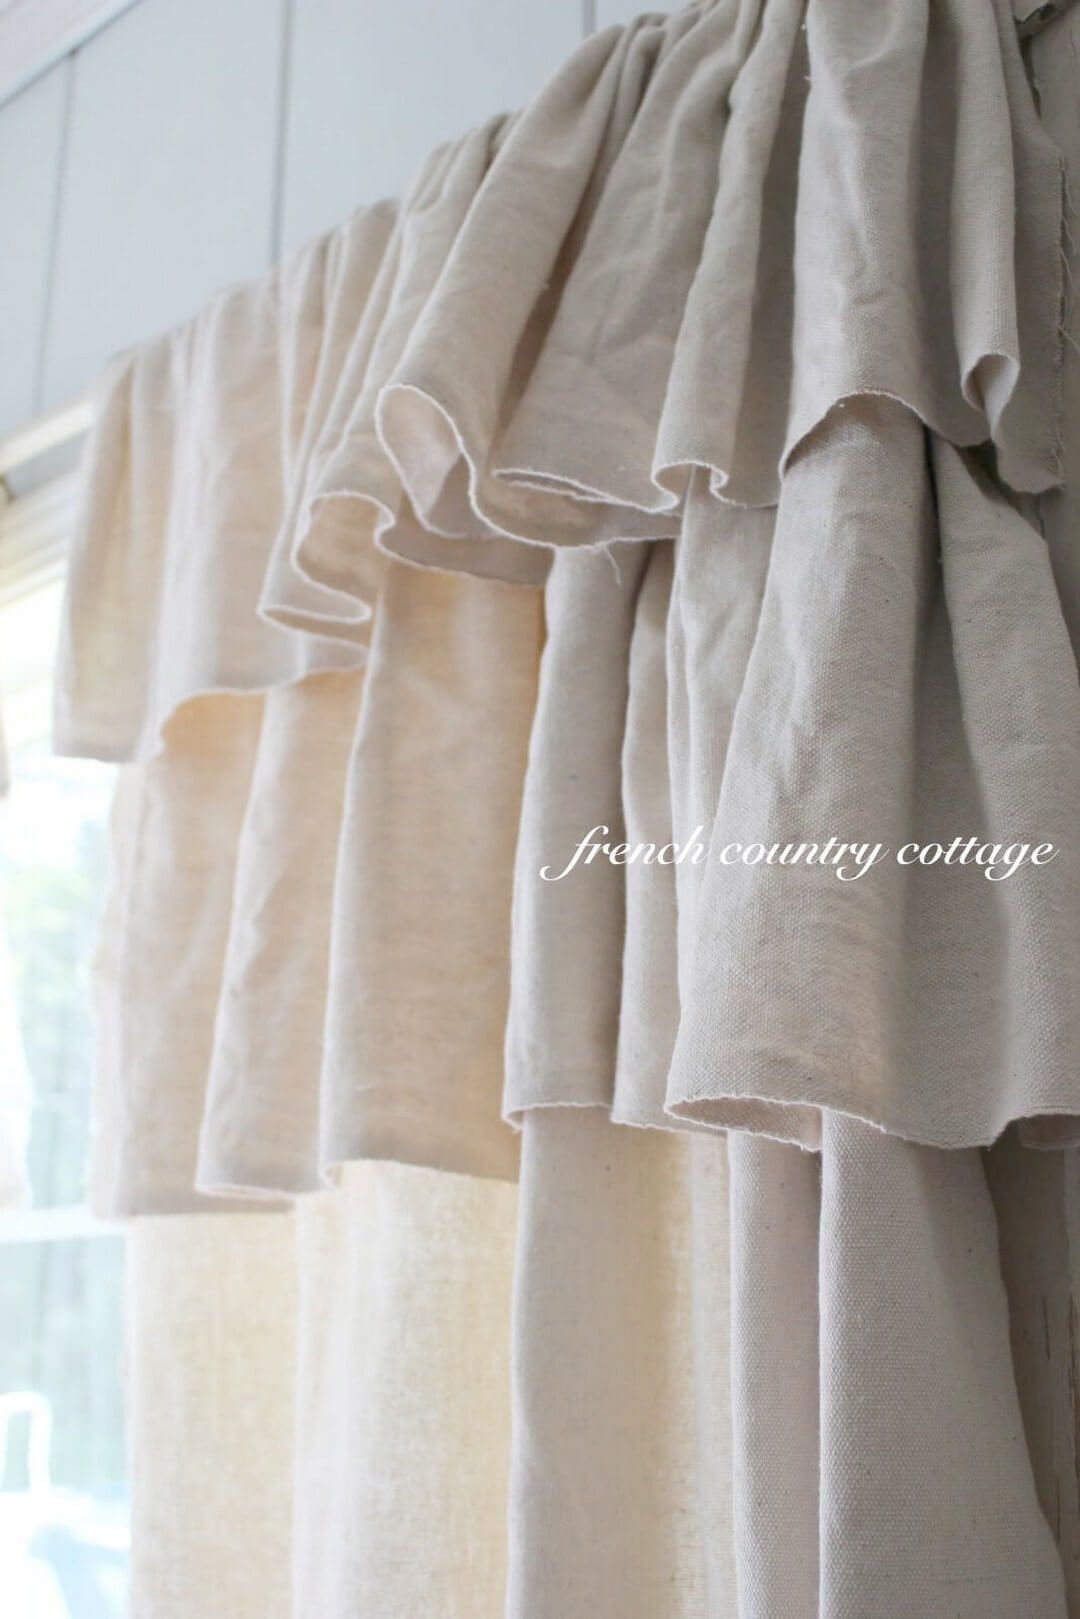 Wohnzimmer Landhausstil Französisch Ruffled Off White Curtains With Layers Farmhouse Guest